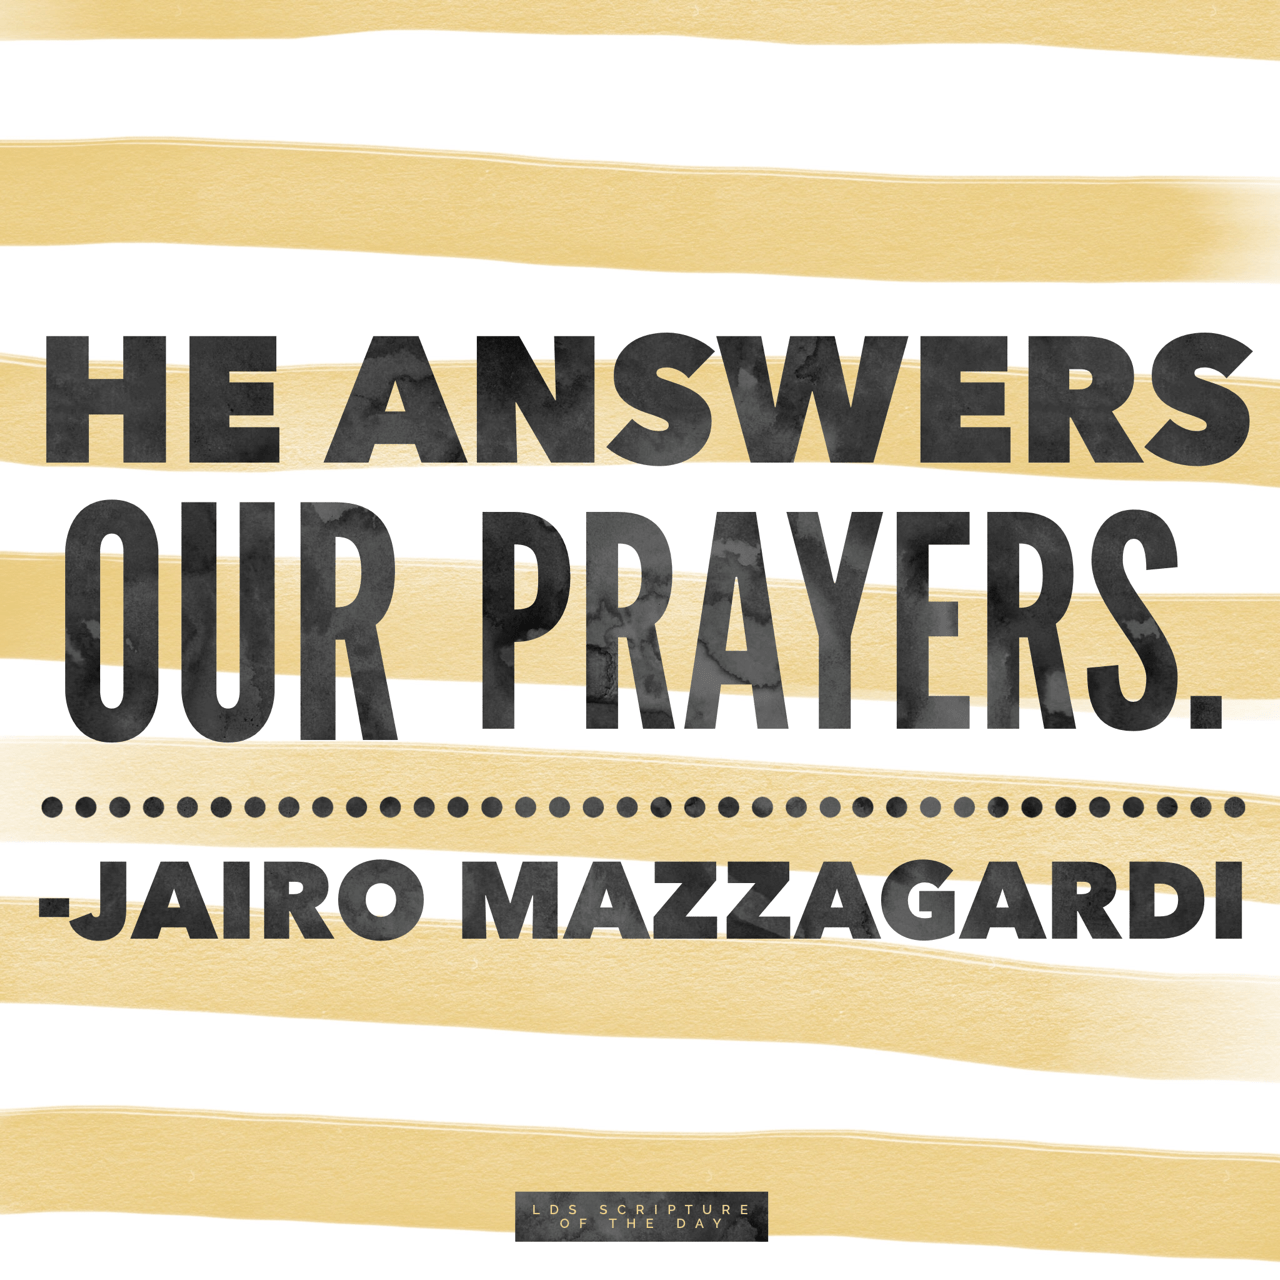 He answers our prayers. - Jairo Mazzagardi